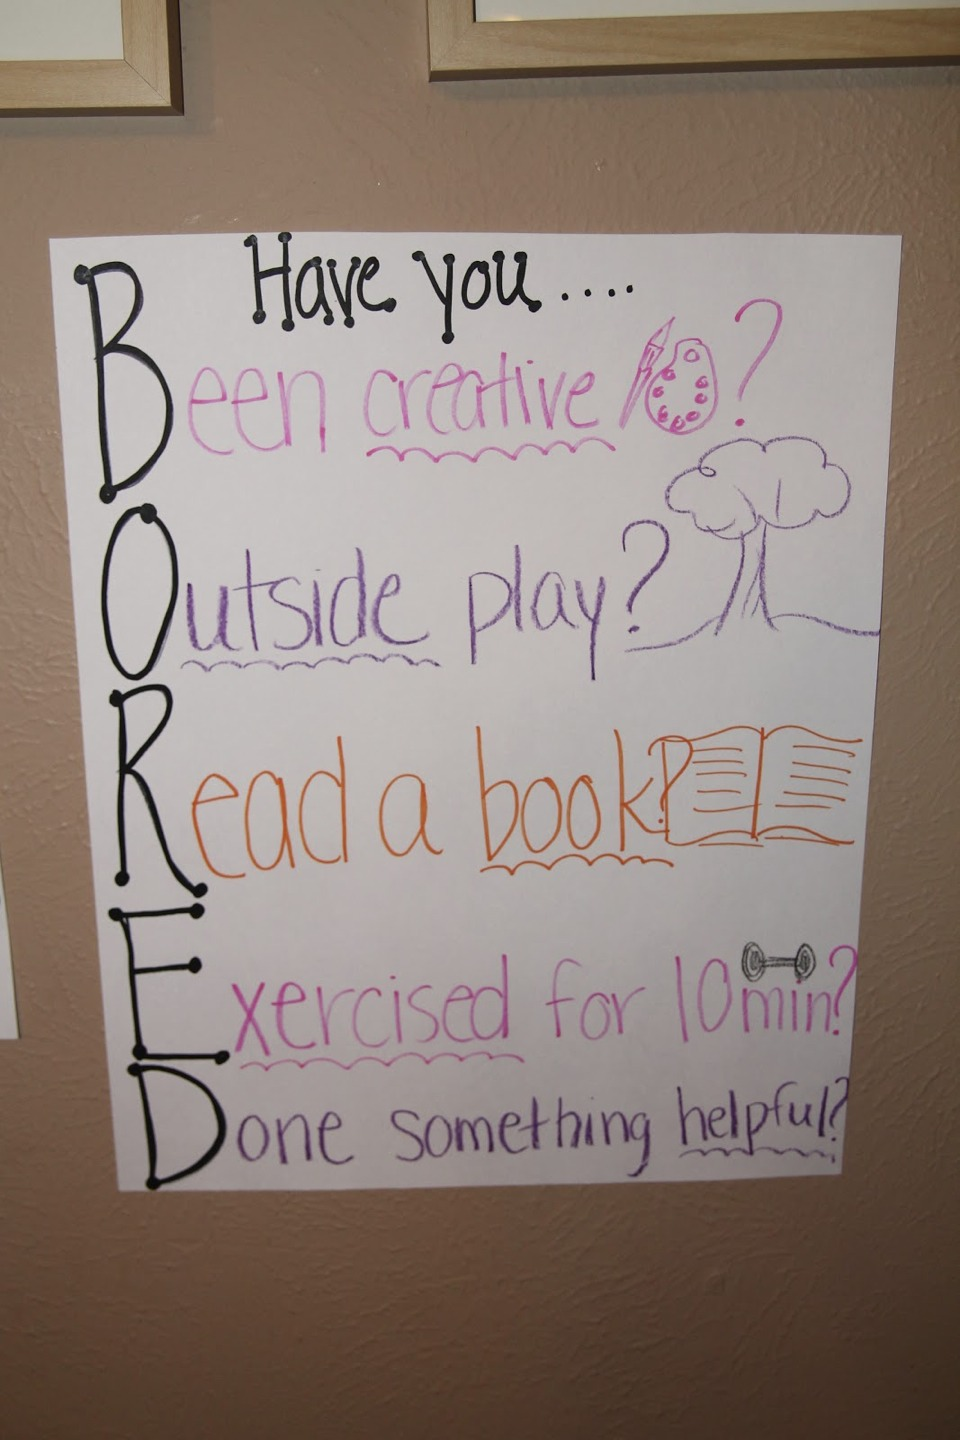 Do these! These are amazing ways to have fun when your bored!!